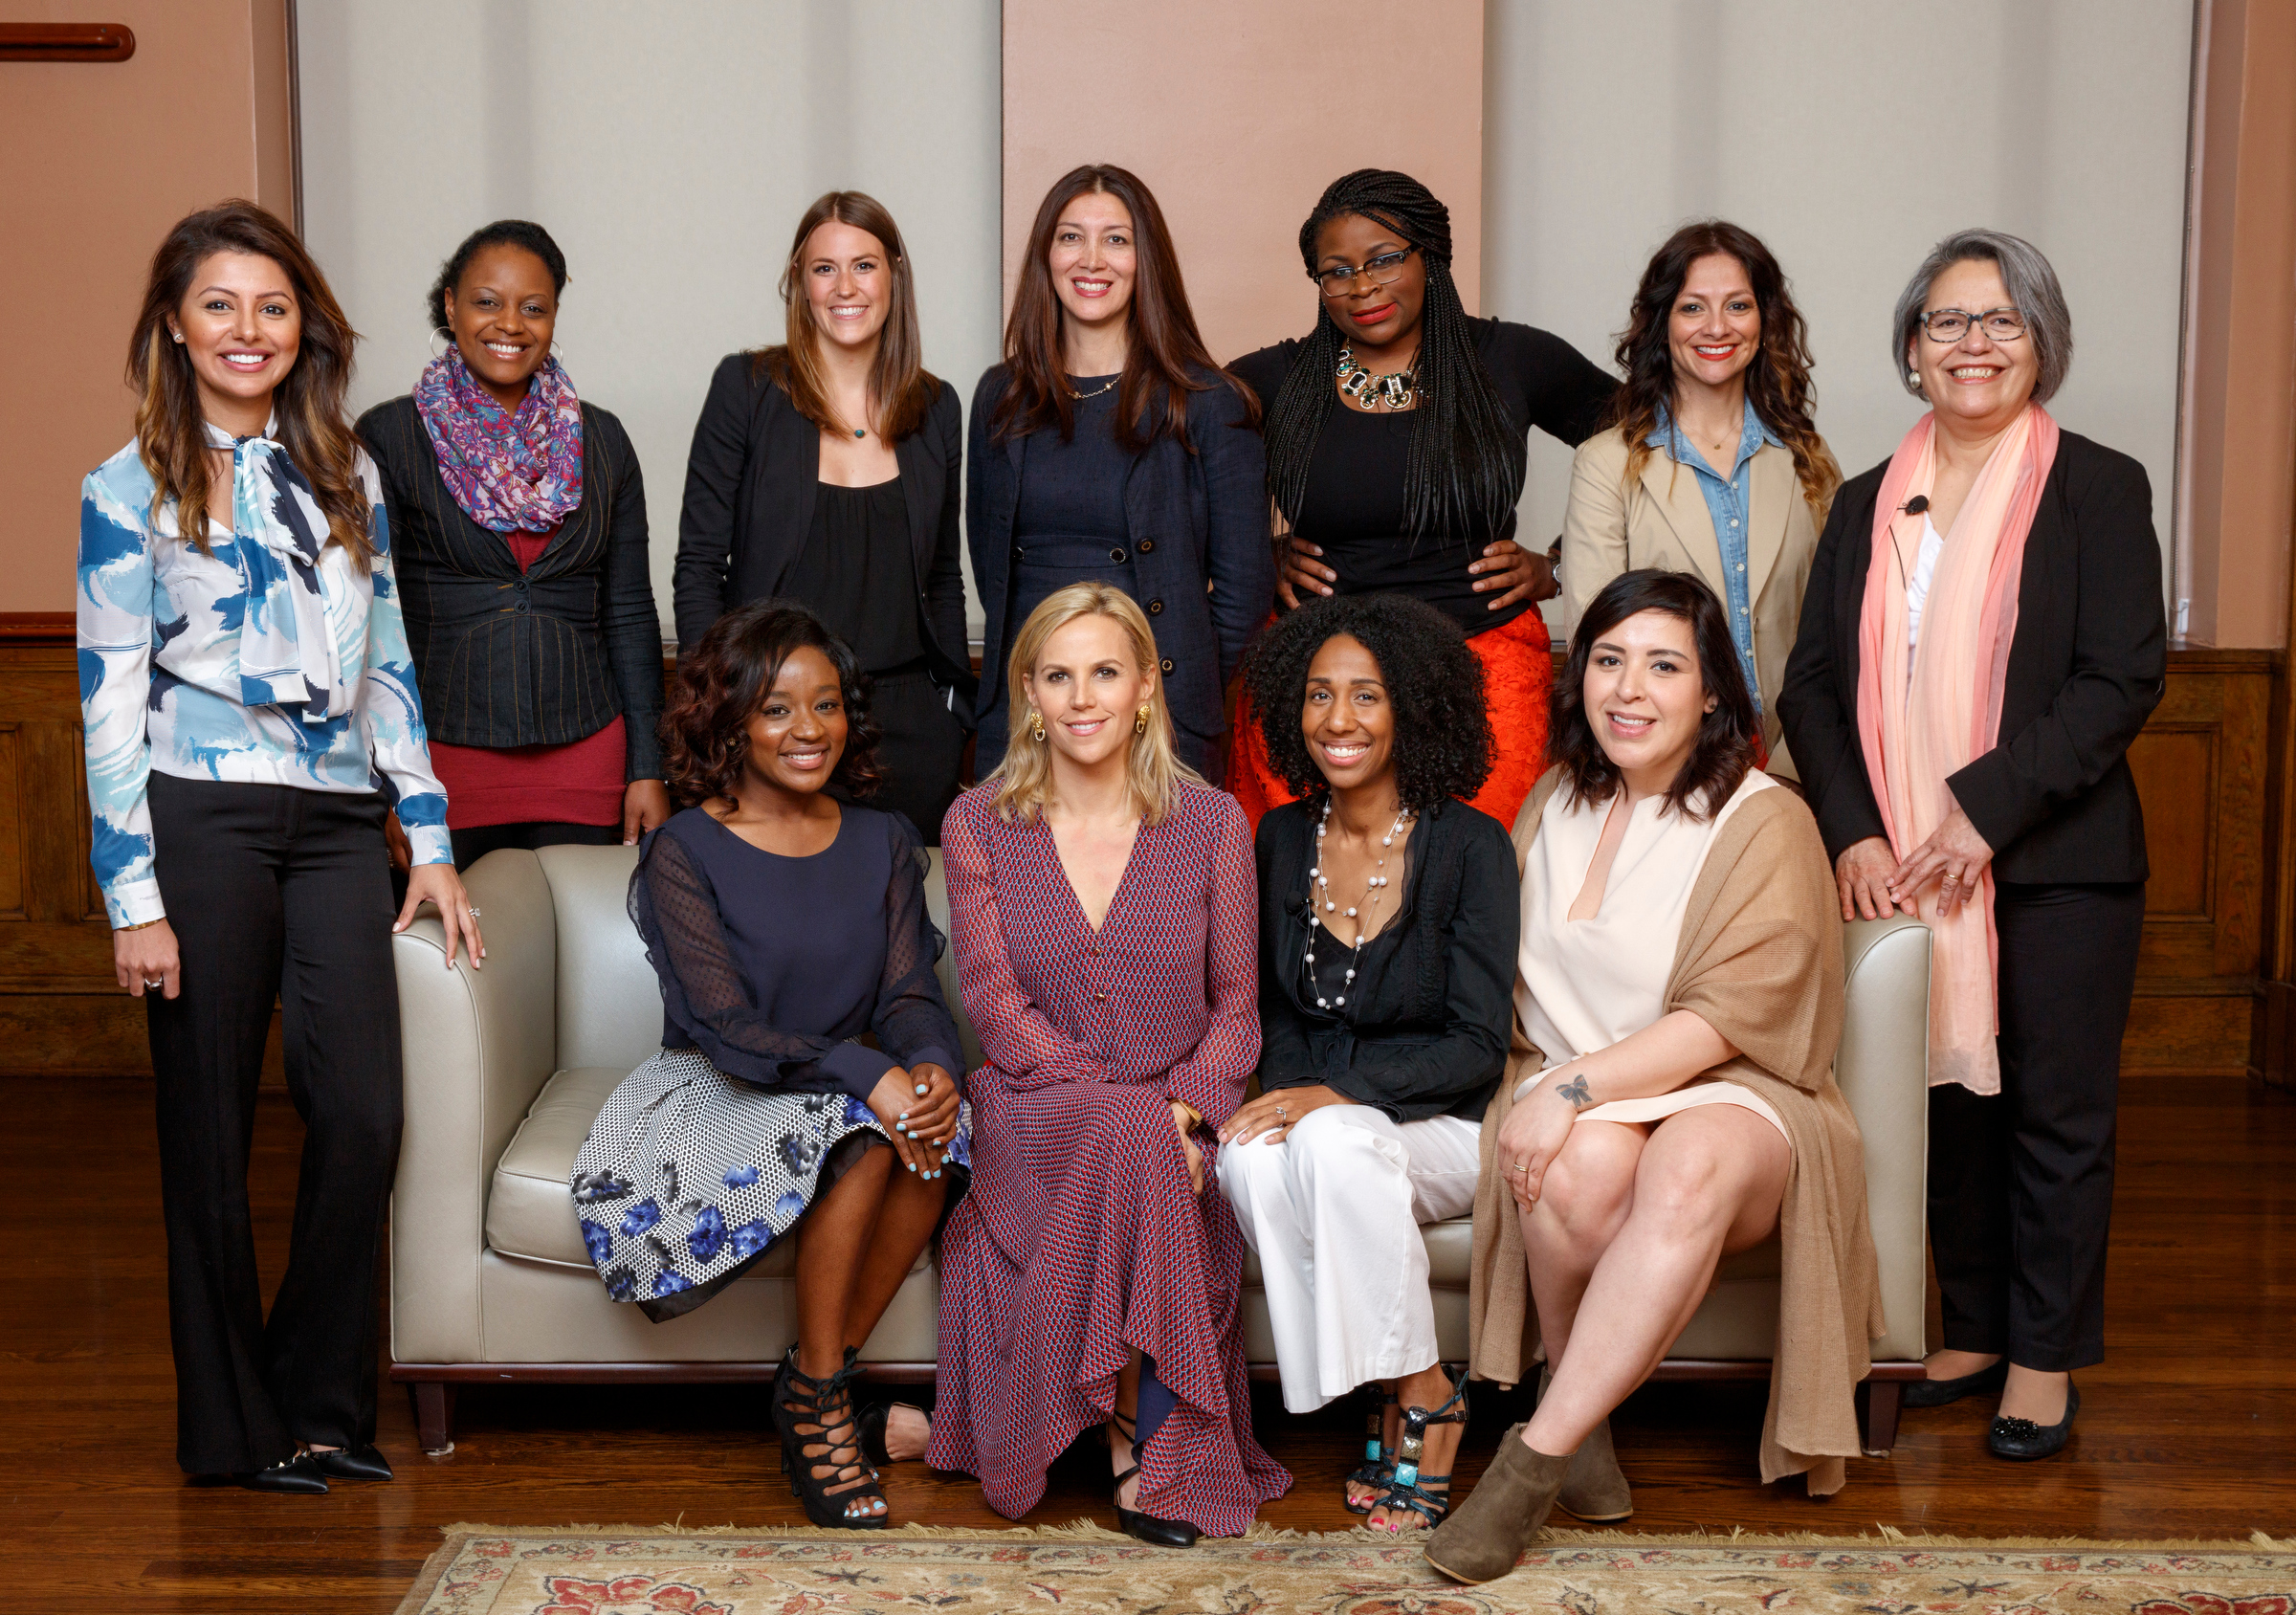 Tory Burch with women entrepreneurs in Texas that have participated in the Foundation's Capital Program powered by Bank of America